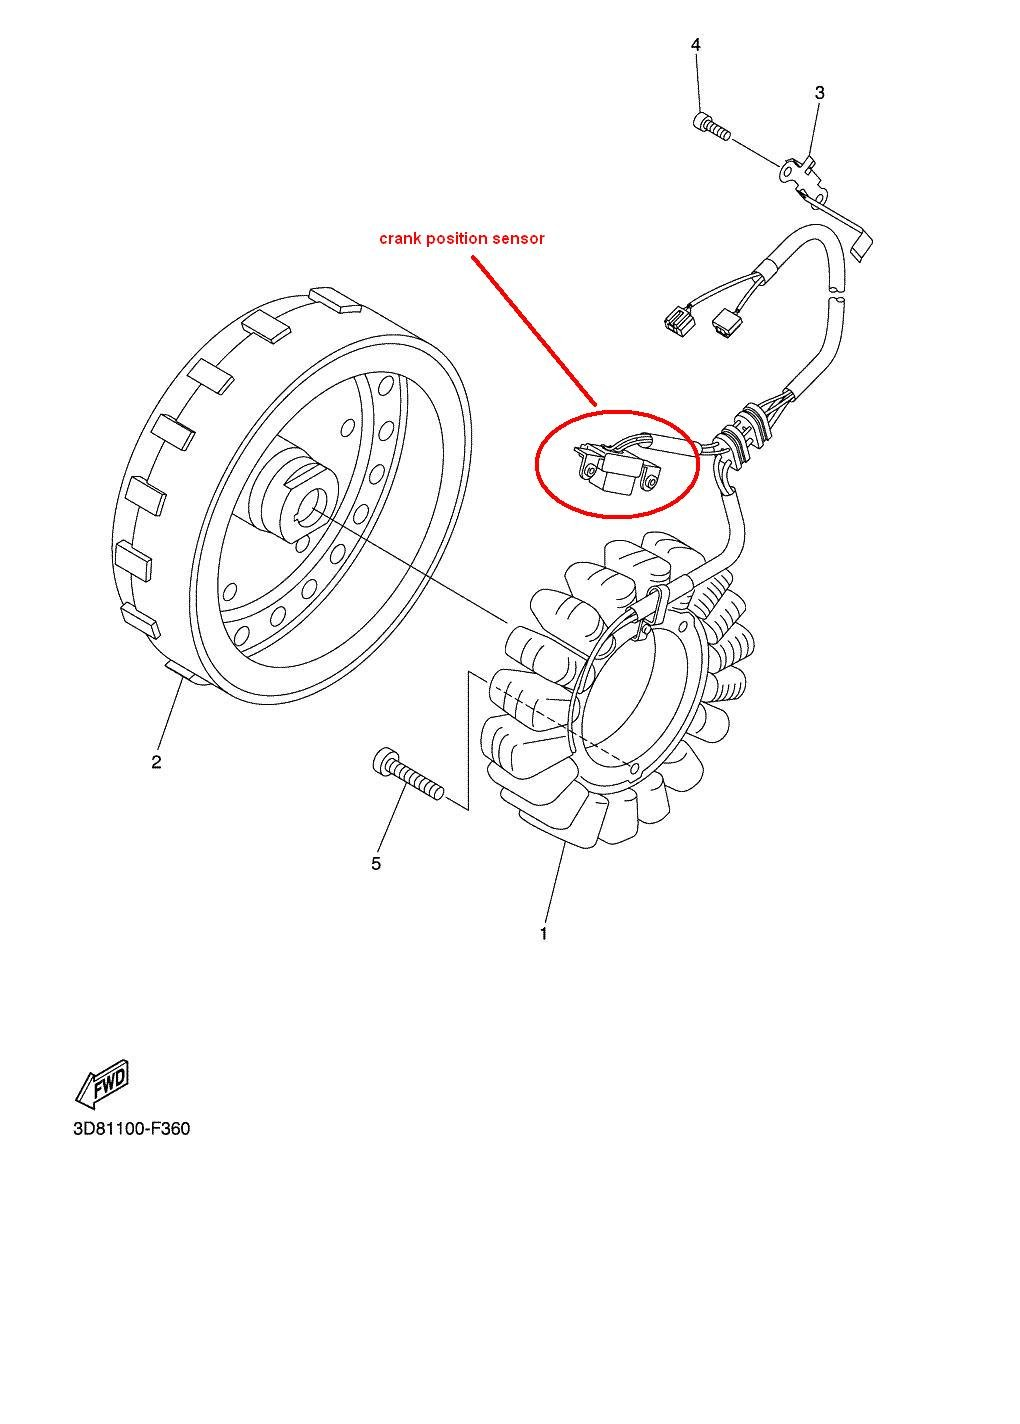 Error Code 112 On V Star 1300 Tourer When Start Switch In Engaged Wiring Diagram Graphic